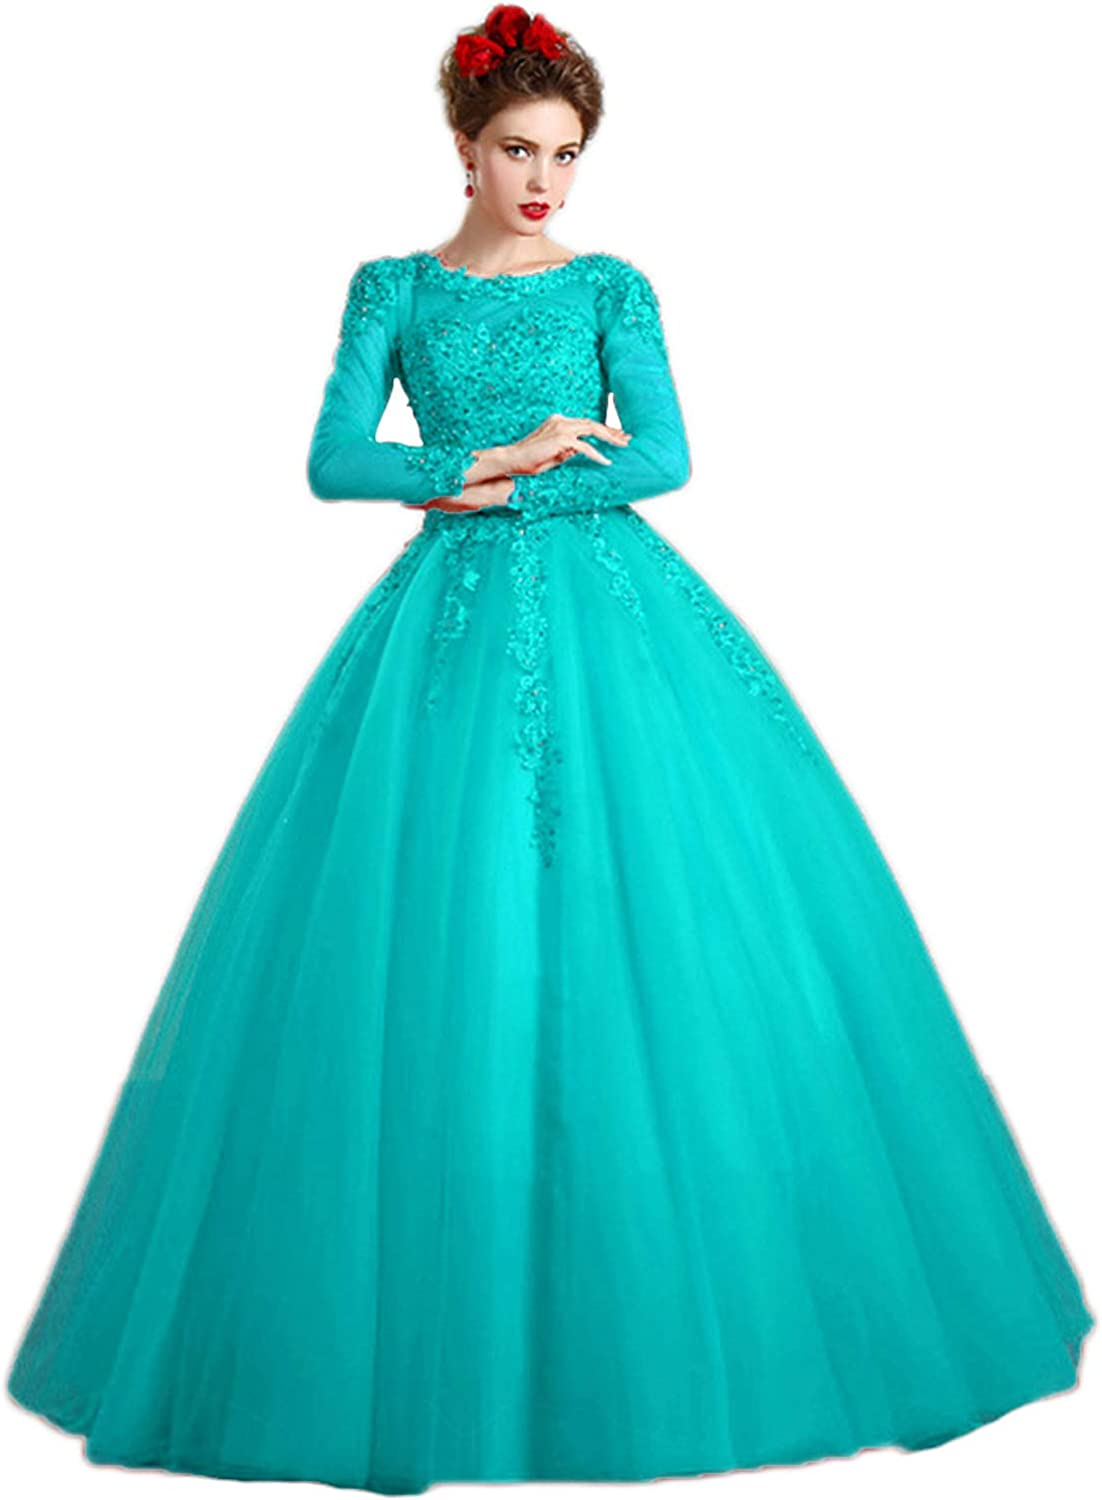 Vimans Womens Long Sleeve Quinceanera Dresses Beading Formal Evening Gown D5227